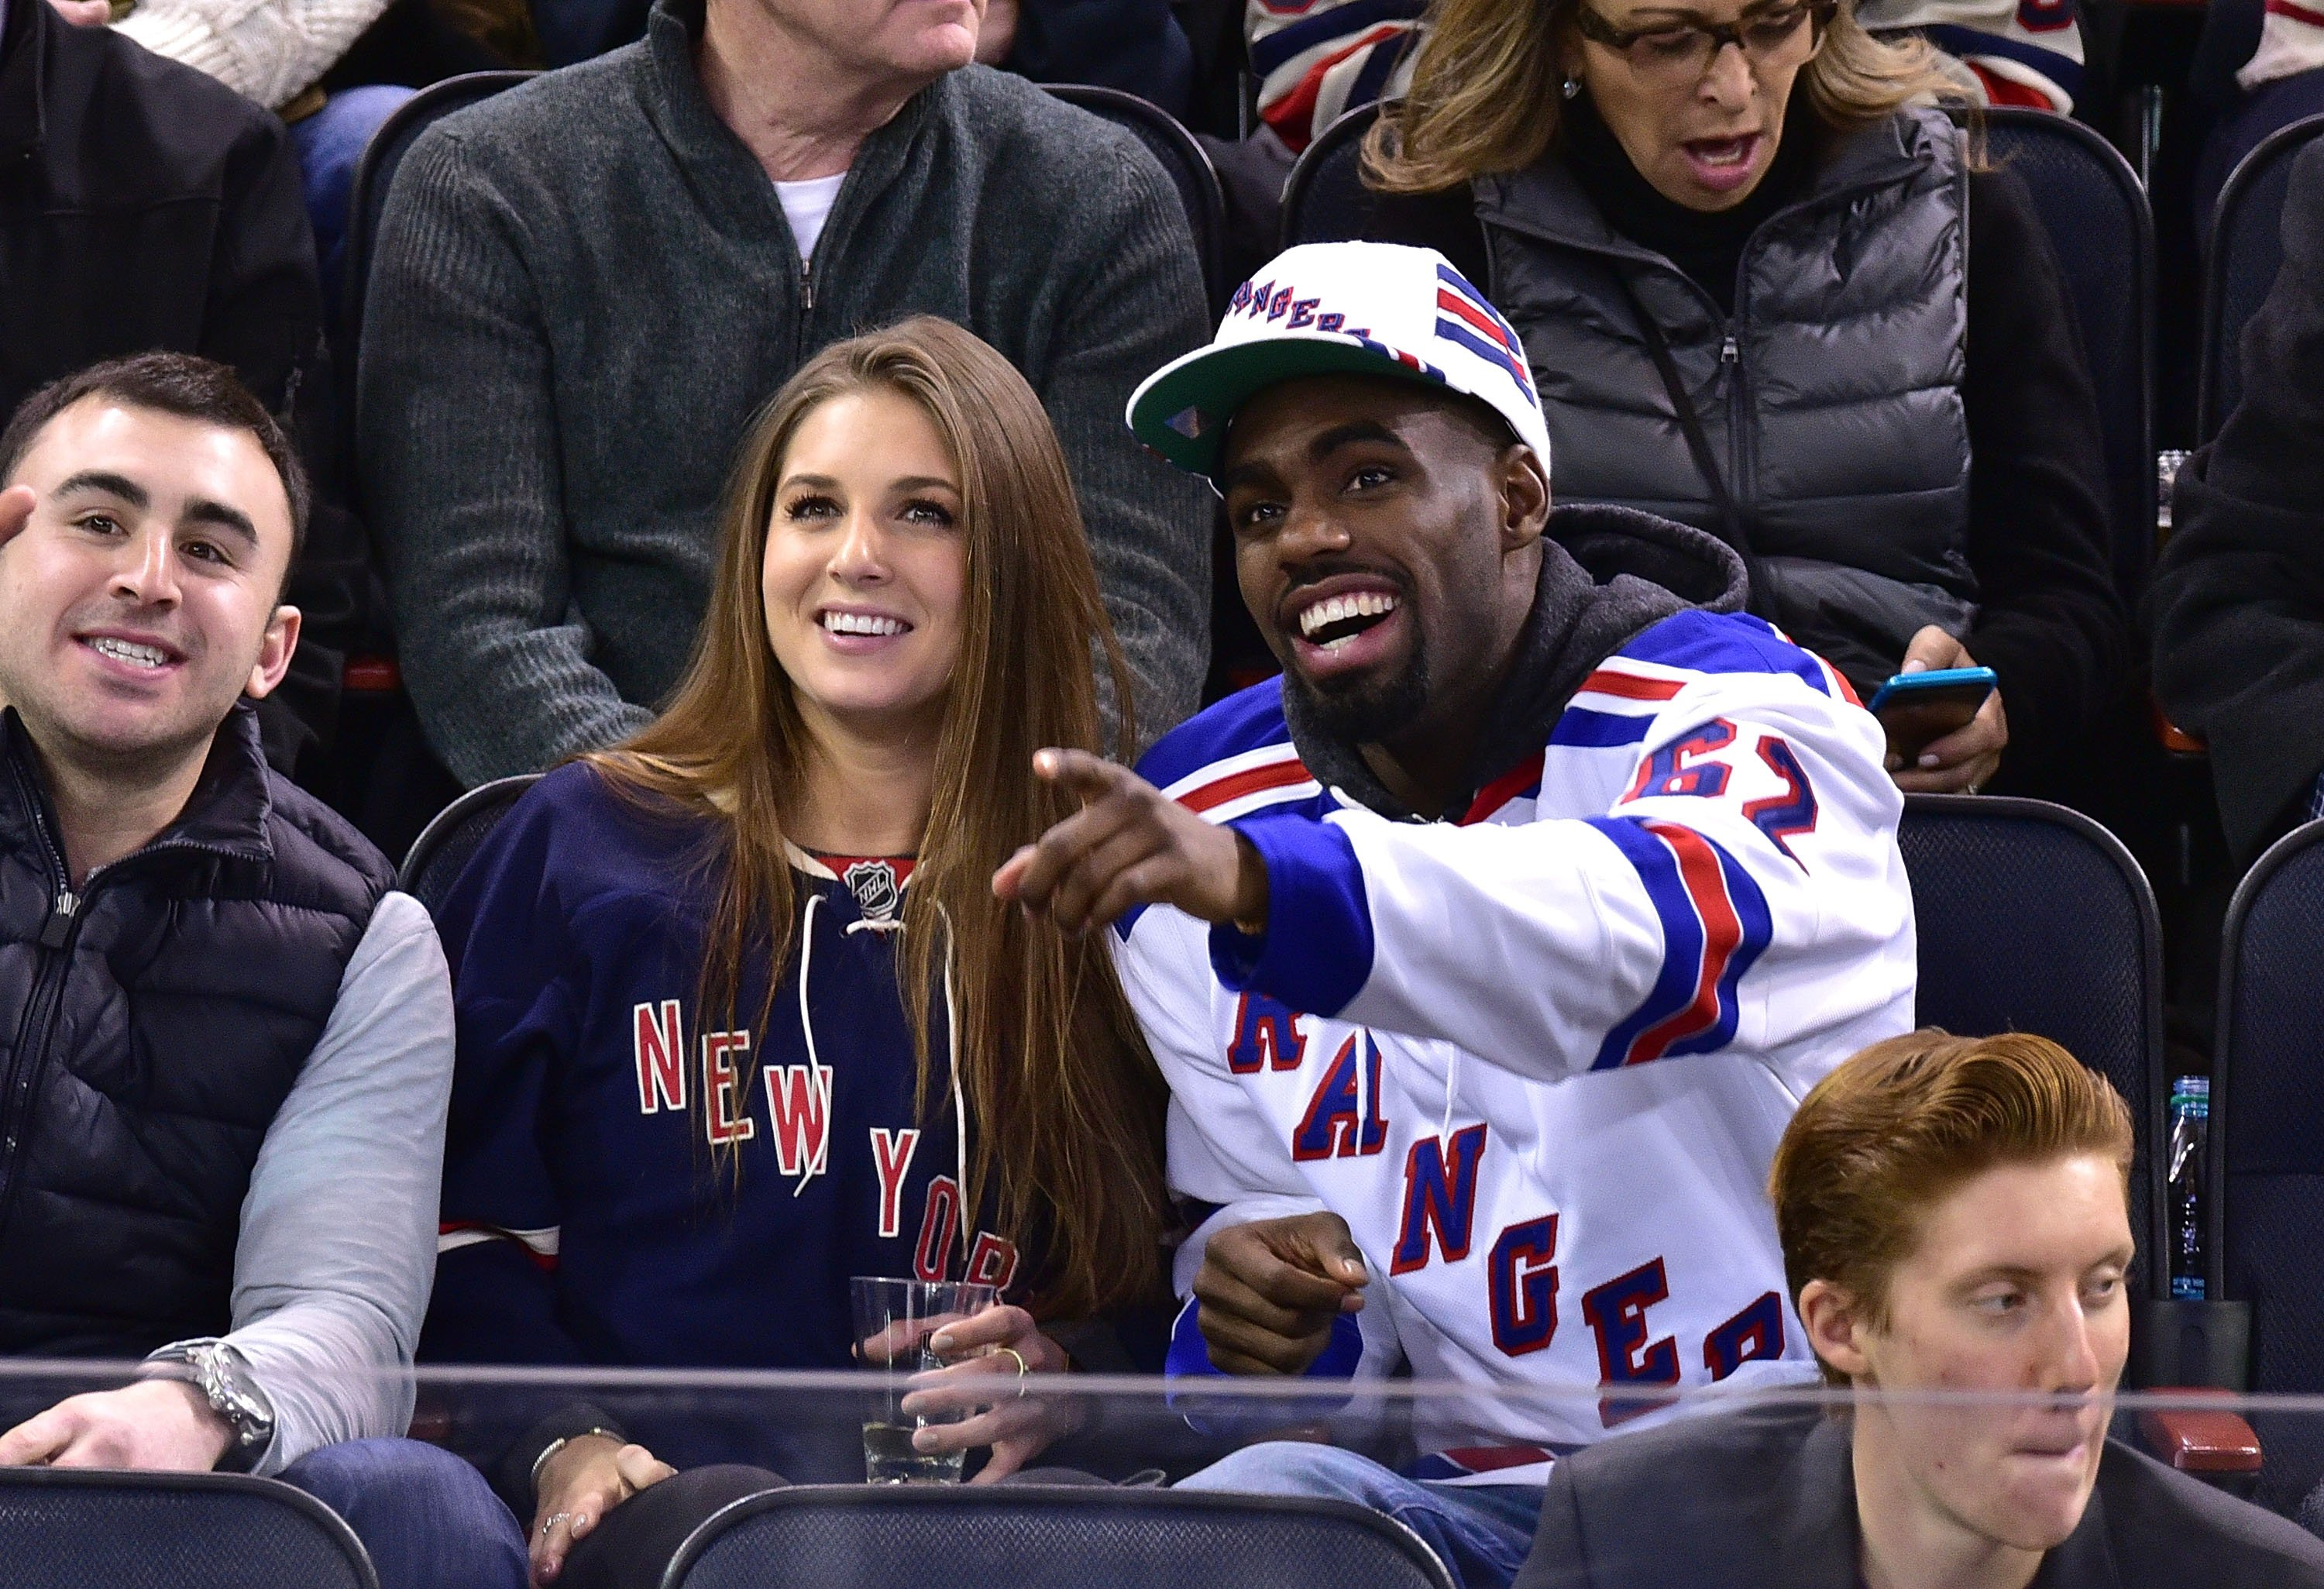 Tim Hardaway Jr. had to go to a New York Rangers game to remember what it was like to win.